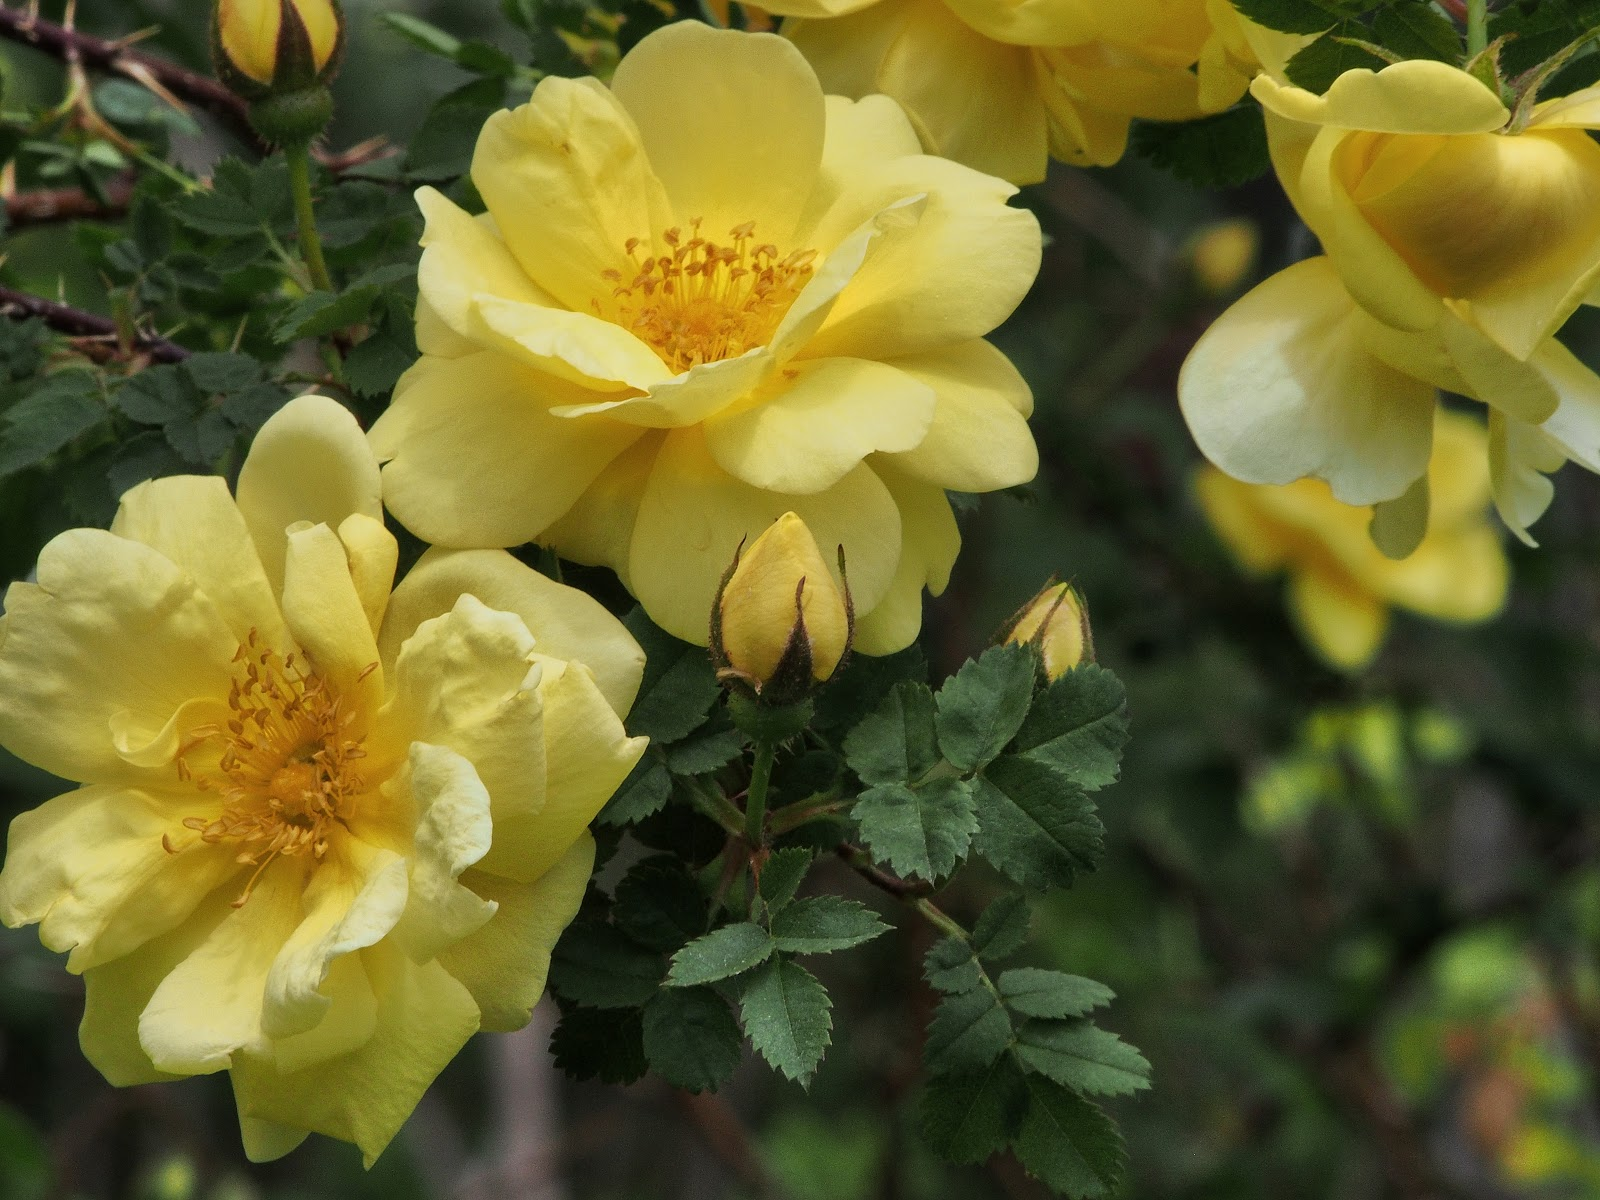 Yellow Roses, #ElizabethPark #RoseGarden #YellowRoses 2014